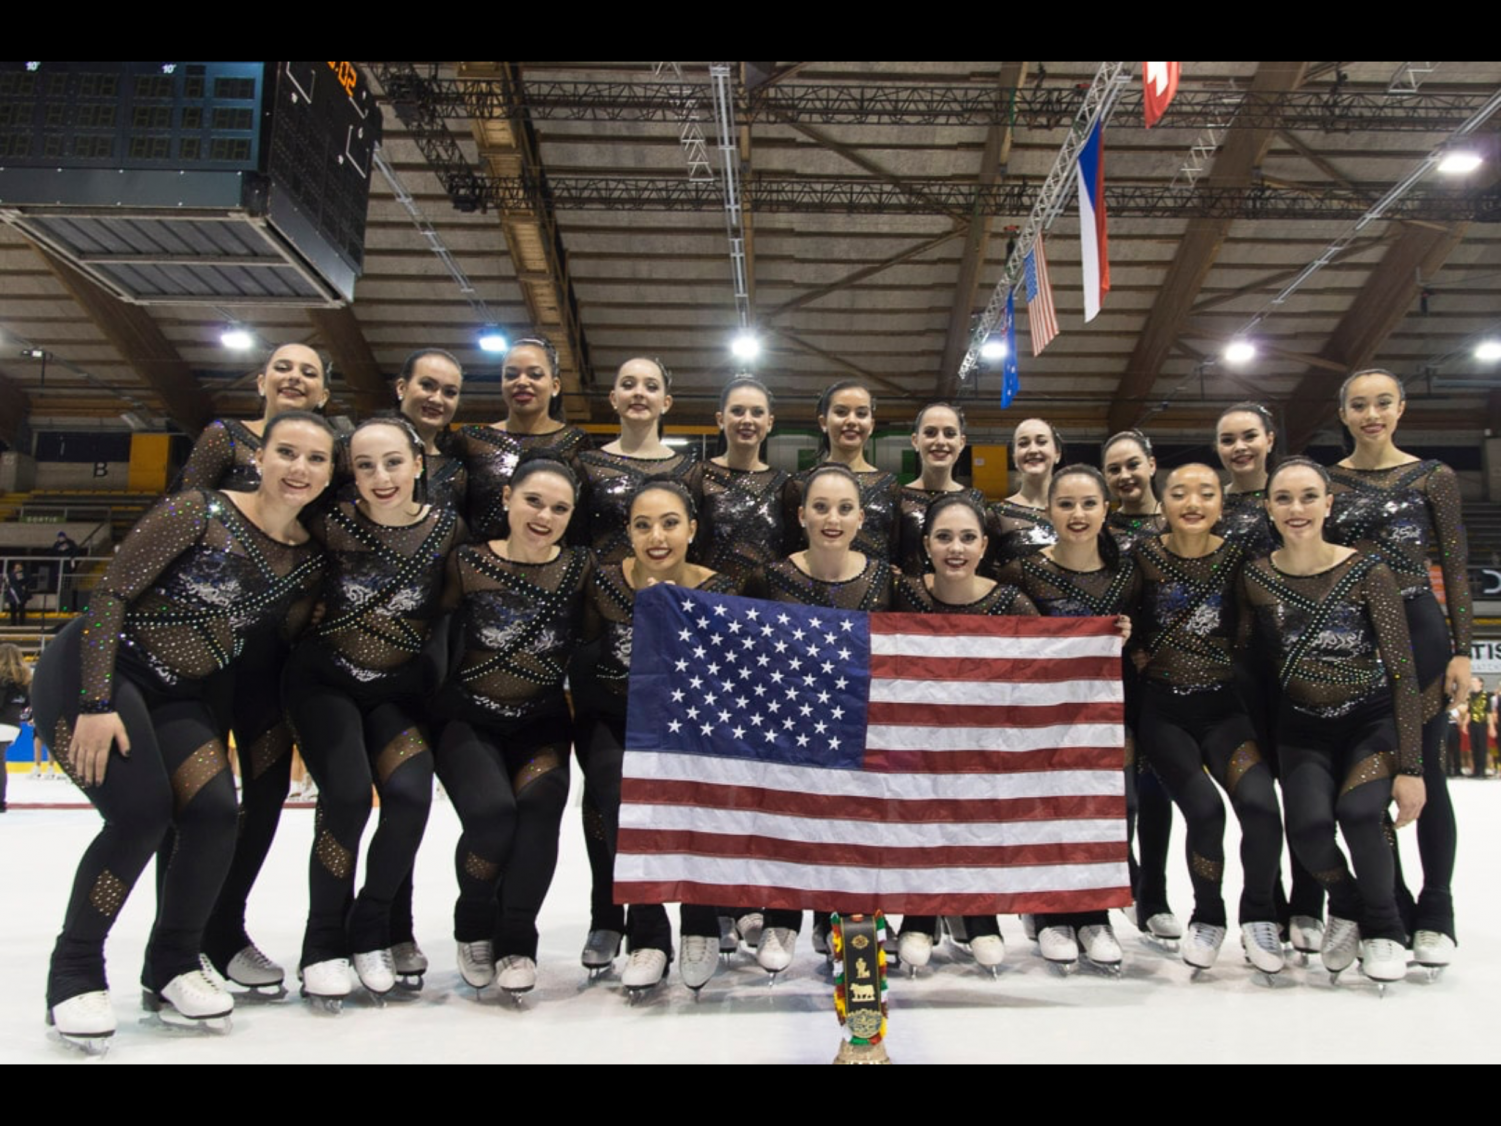 Corinne Fereshetian smiles with Team USA after a successful skate. (Photo reprinted with permission of Corinne Fereshetian.)